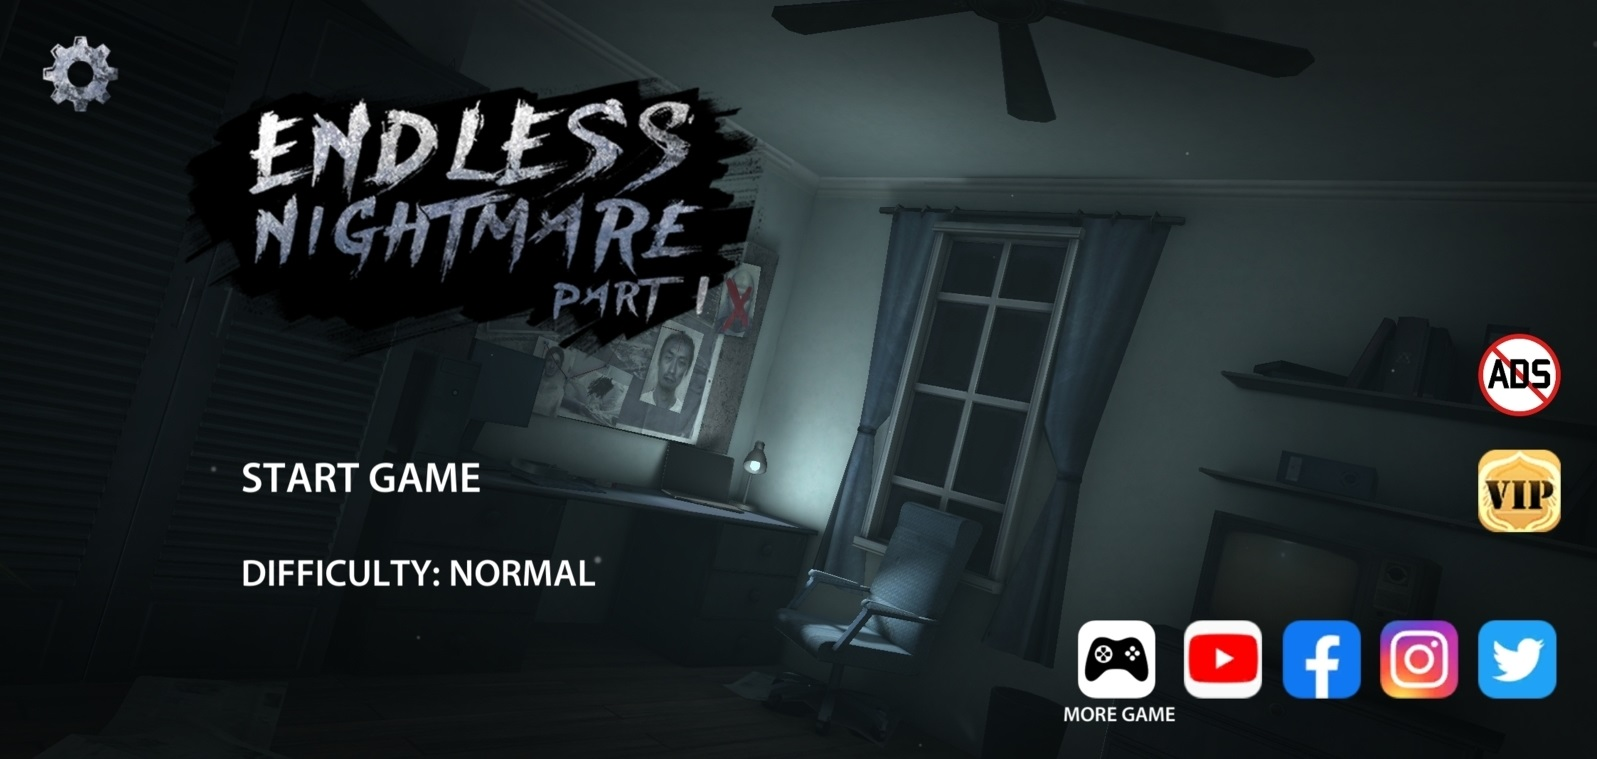 Endless Nighmare Apk